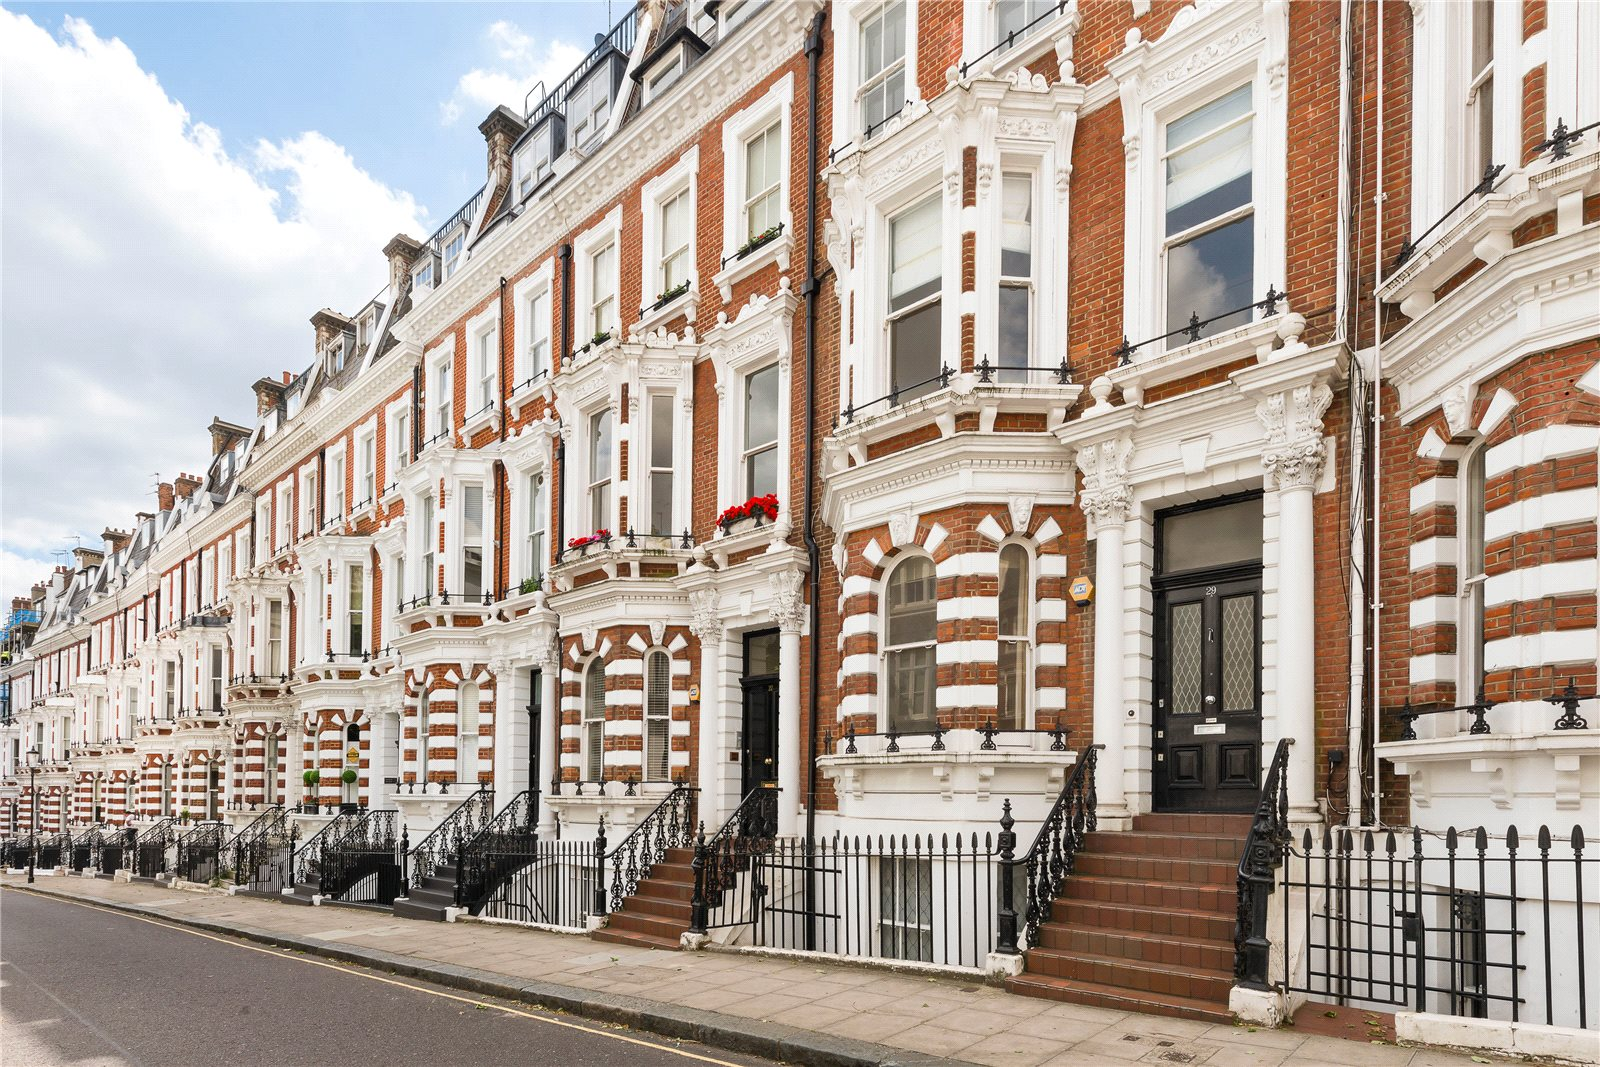 Additional photo for property listing at Hornton Street, Kensington, London, W8 Kensington, London, England